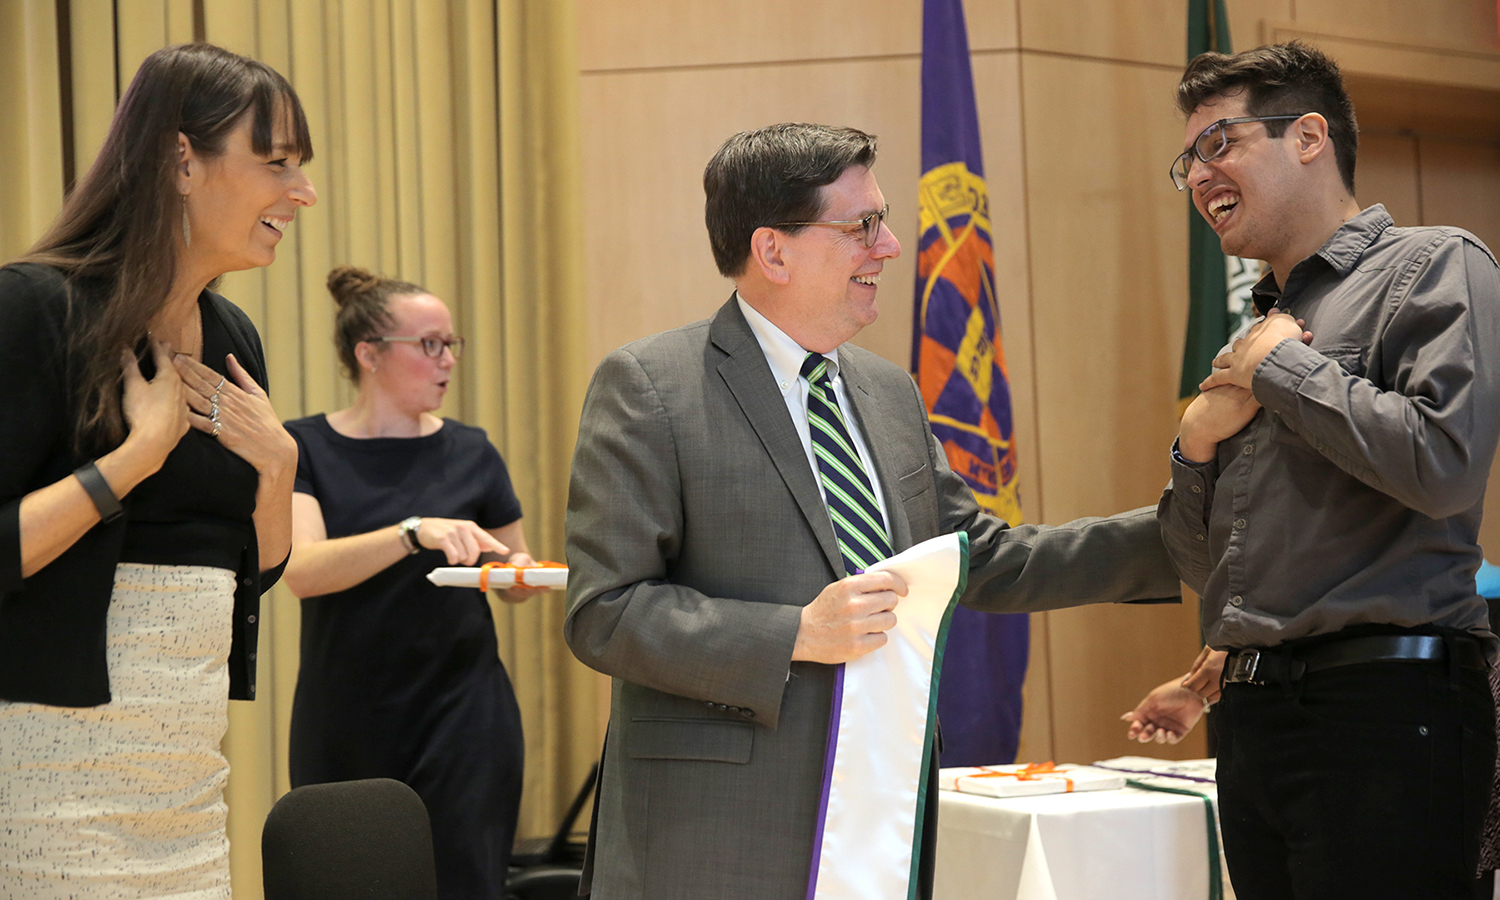 Bryan Quezada '17 accepts his Posse stole from President Mark D. Gearan and Deborah Bial during the Posse Recognition Ceremony.